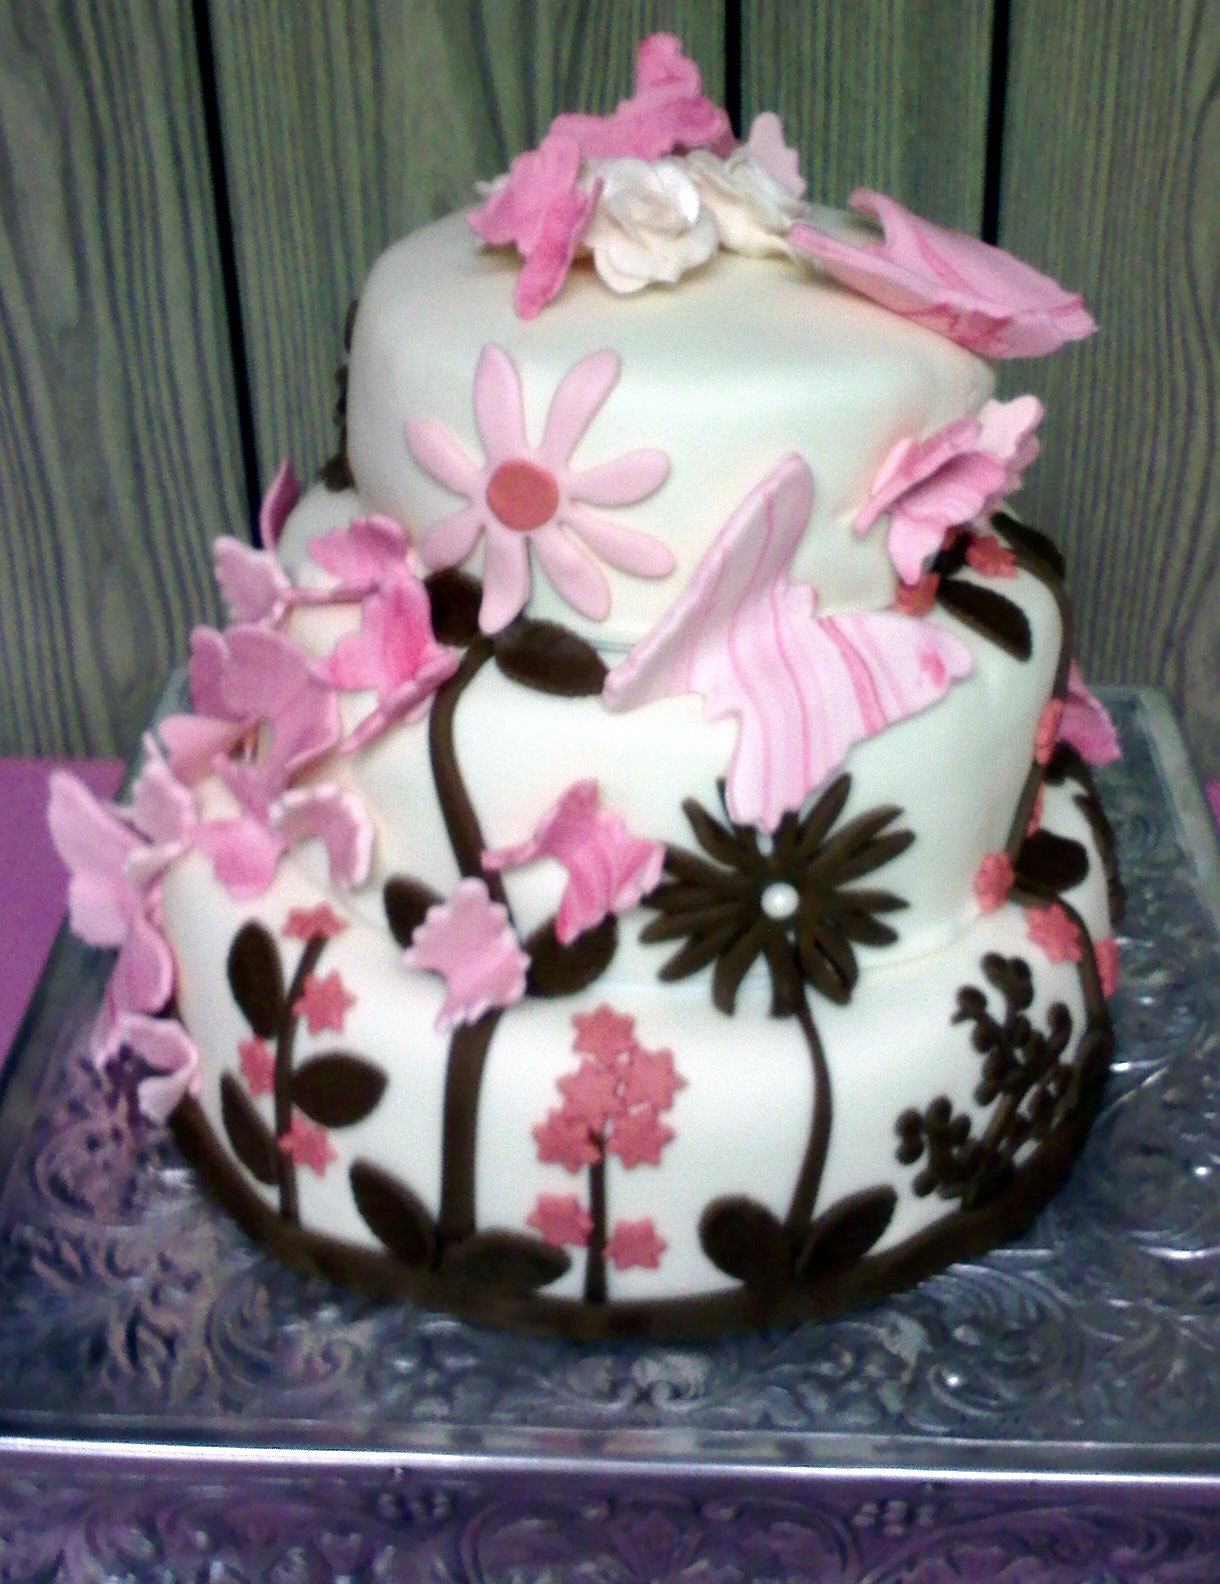 Butterfly Baby Shower Cake Images : Seven Deadly Sweets: Our Cakes Throughout The Years ...